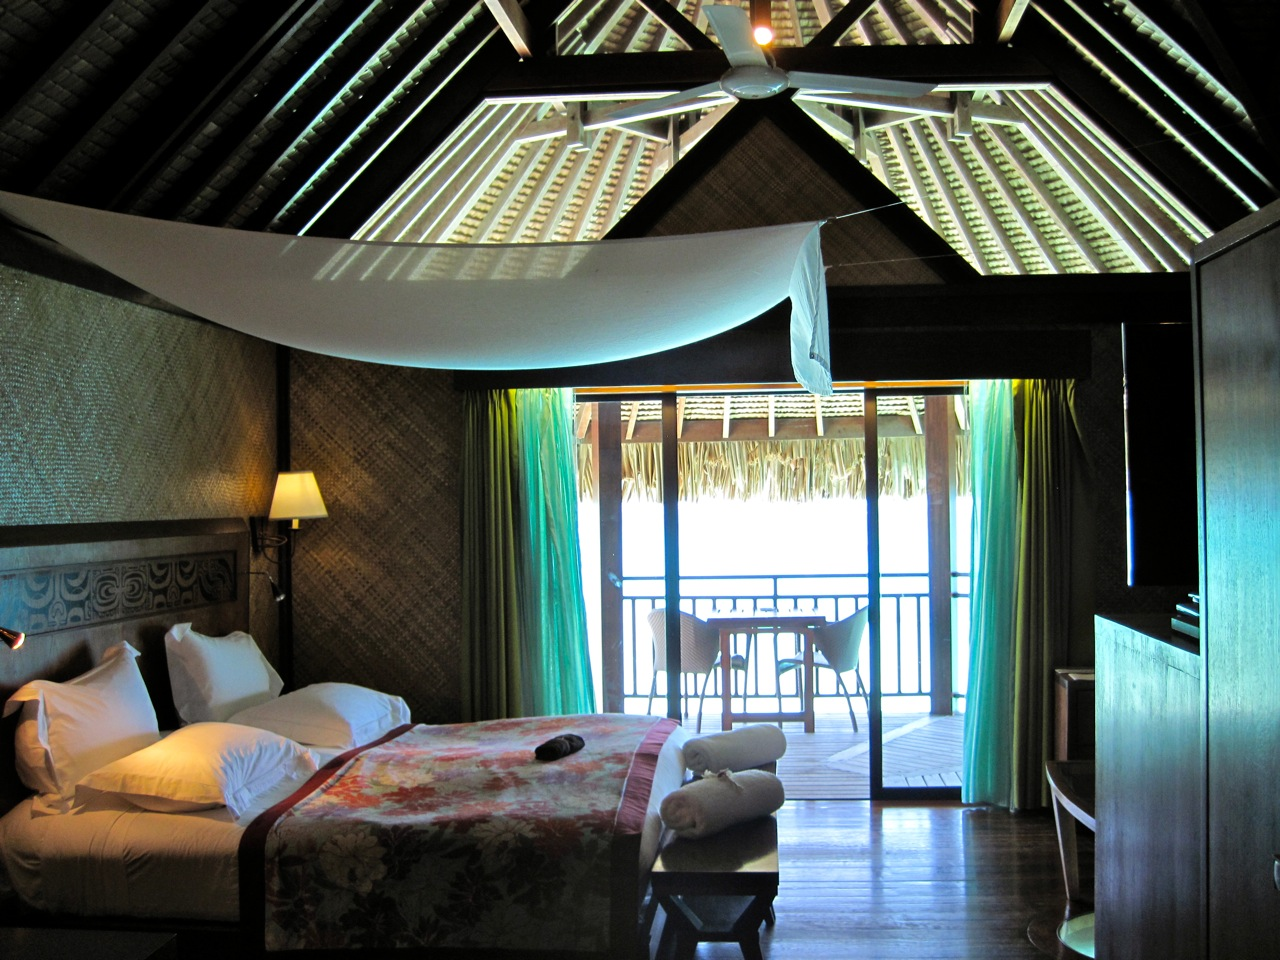 the interior of an overwater bungalow at the Sofitel Private Island in Bora-Bora